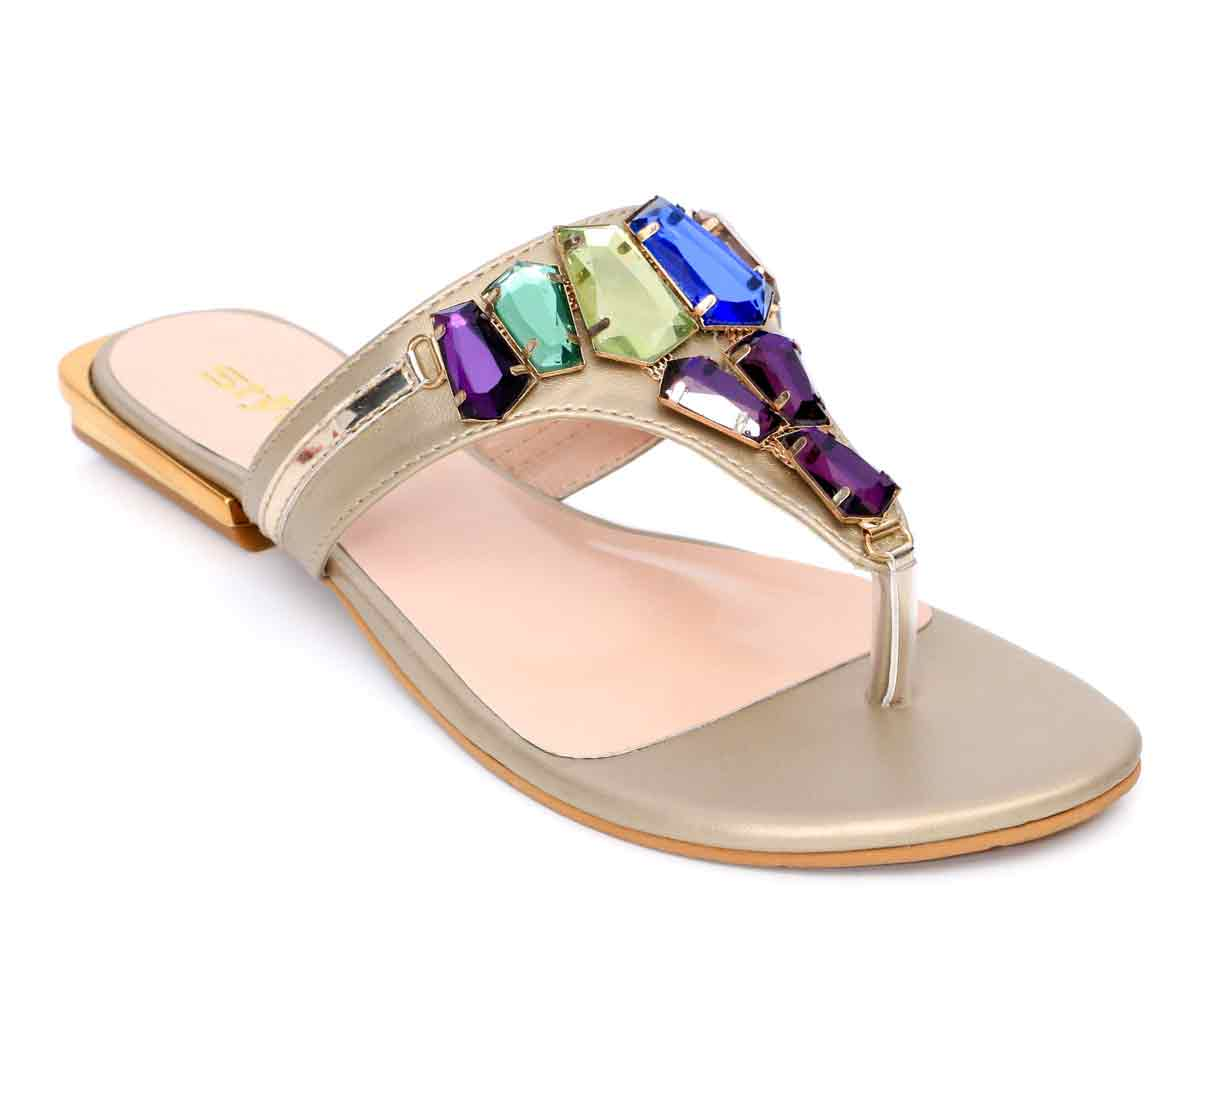 Multicolored flat shoes for eid